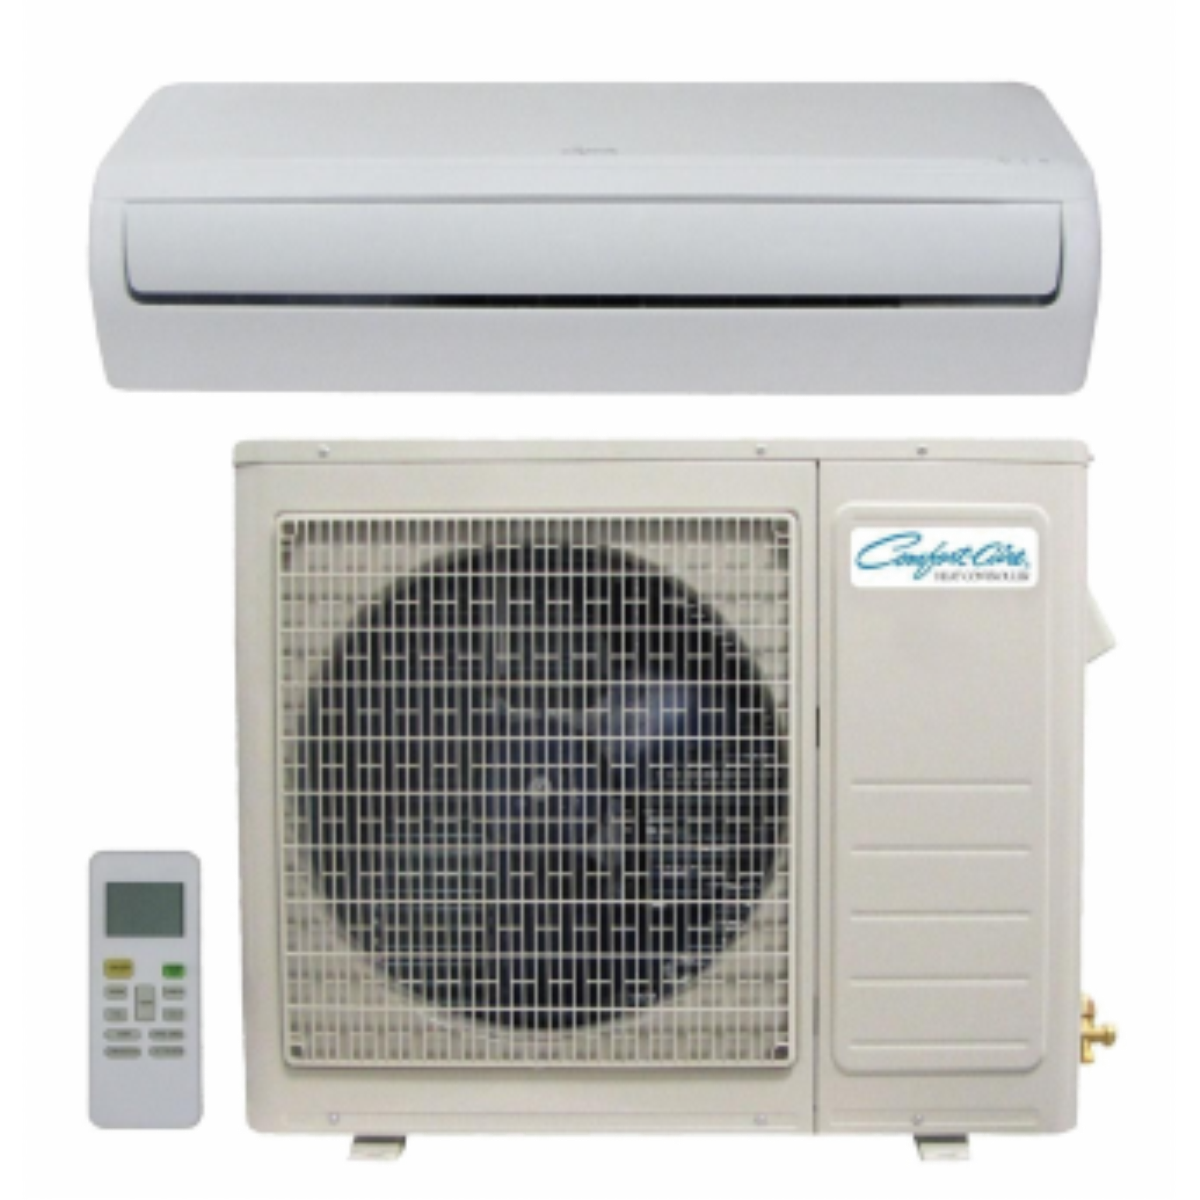 Comfort-Aire DVC09SD 9,000 BTU Ductless Single Zone Mini Split Air Conditioner